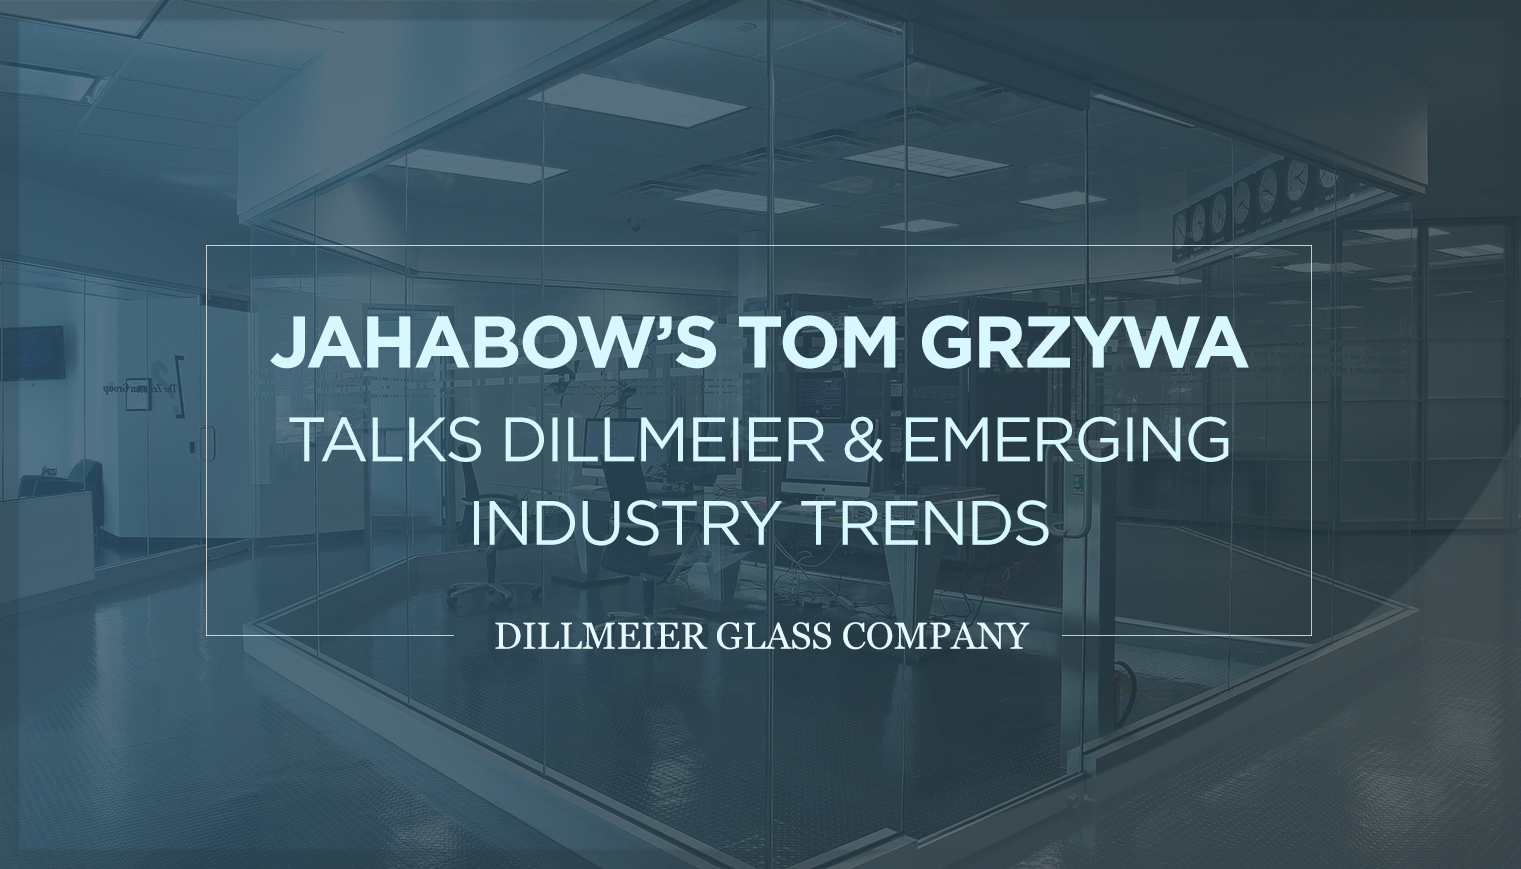 Jahabow's Tom Grzywa Talks Dillmeier & Emerging Industry Trends